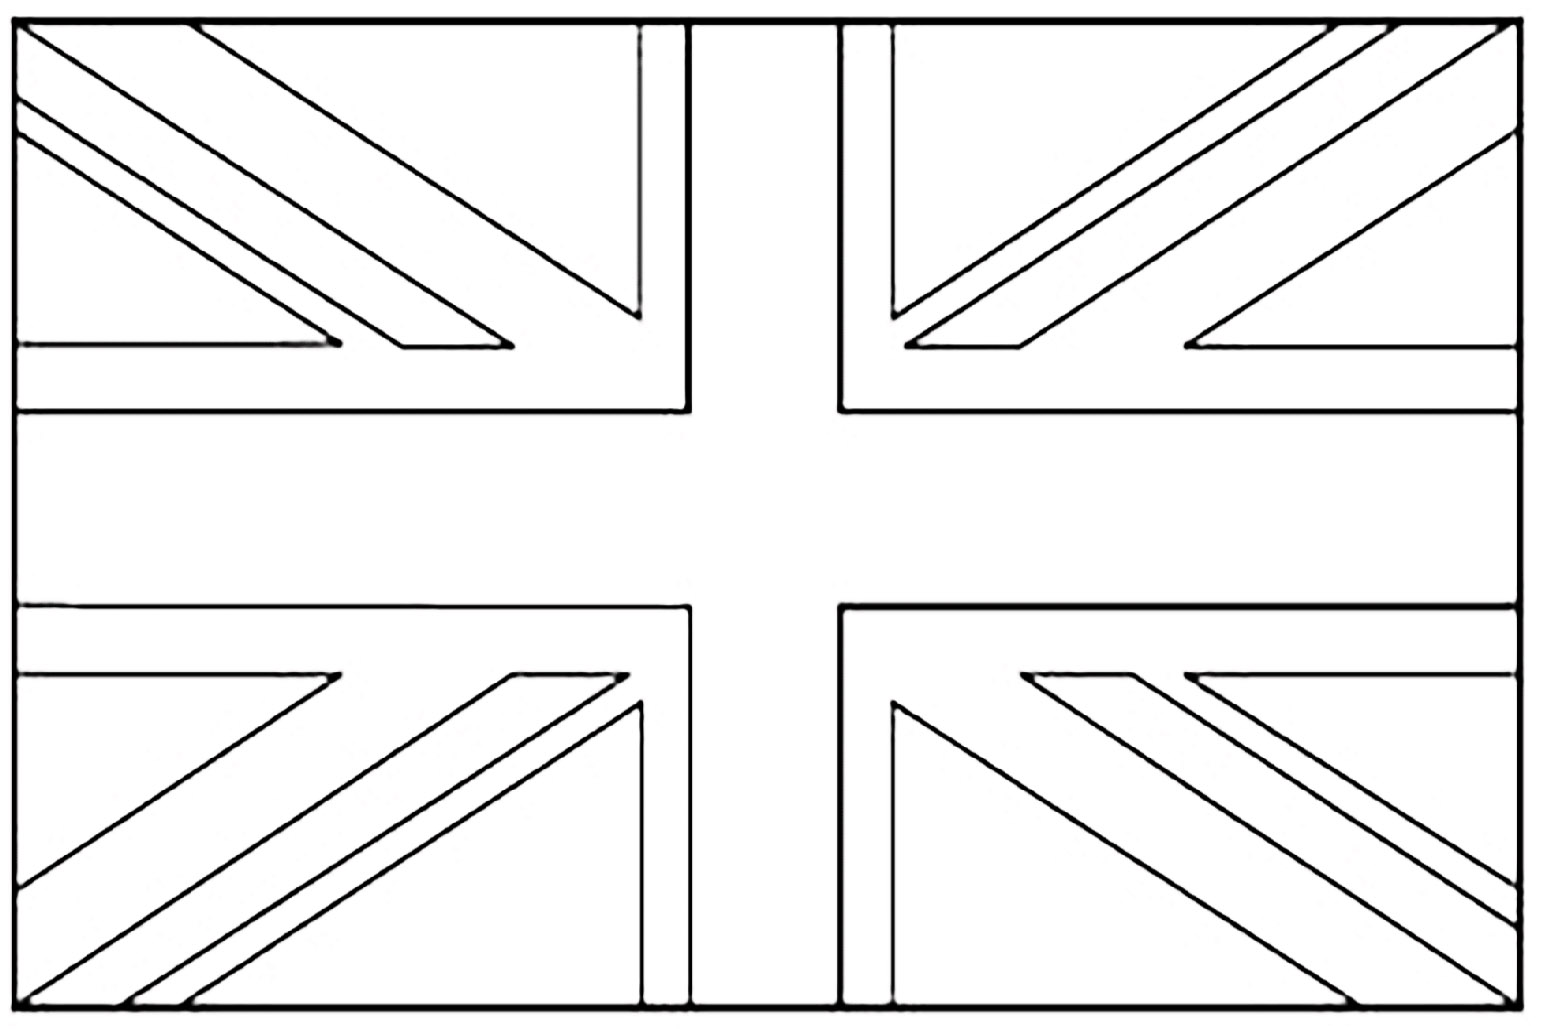 picture of union jack flag to colour free printable union jack flag to colour free printable picture of union to colour jack flag